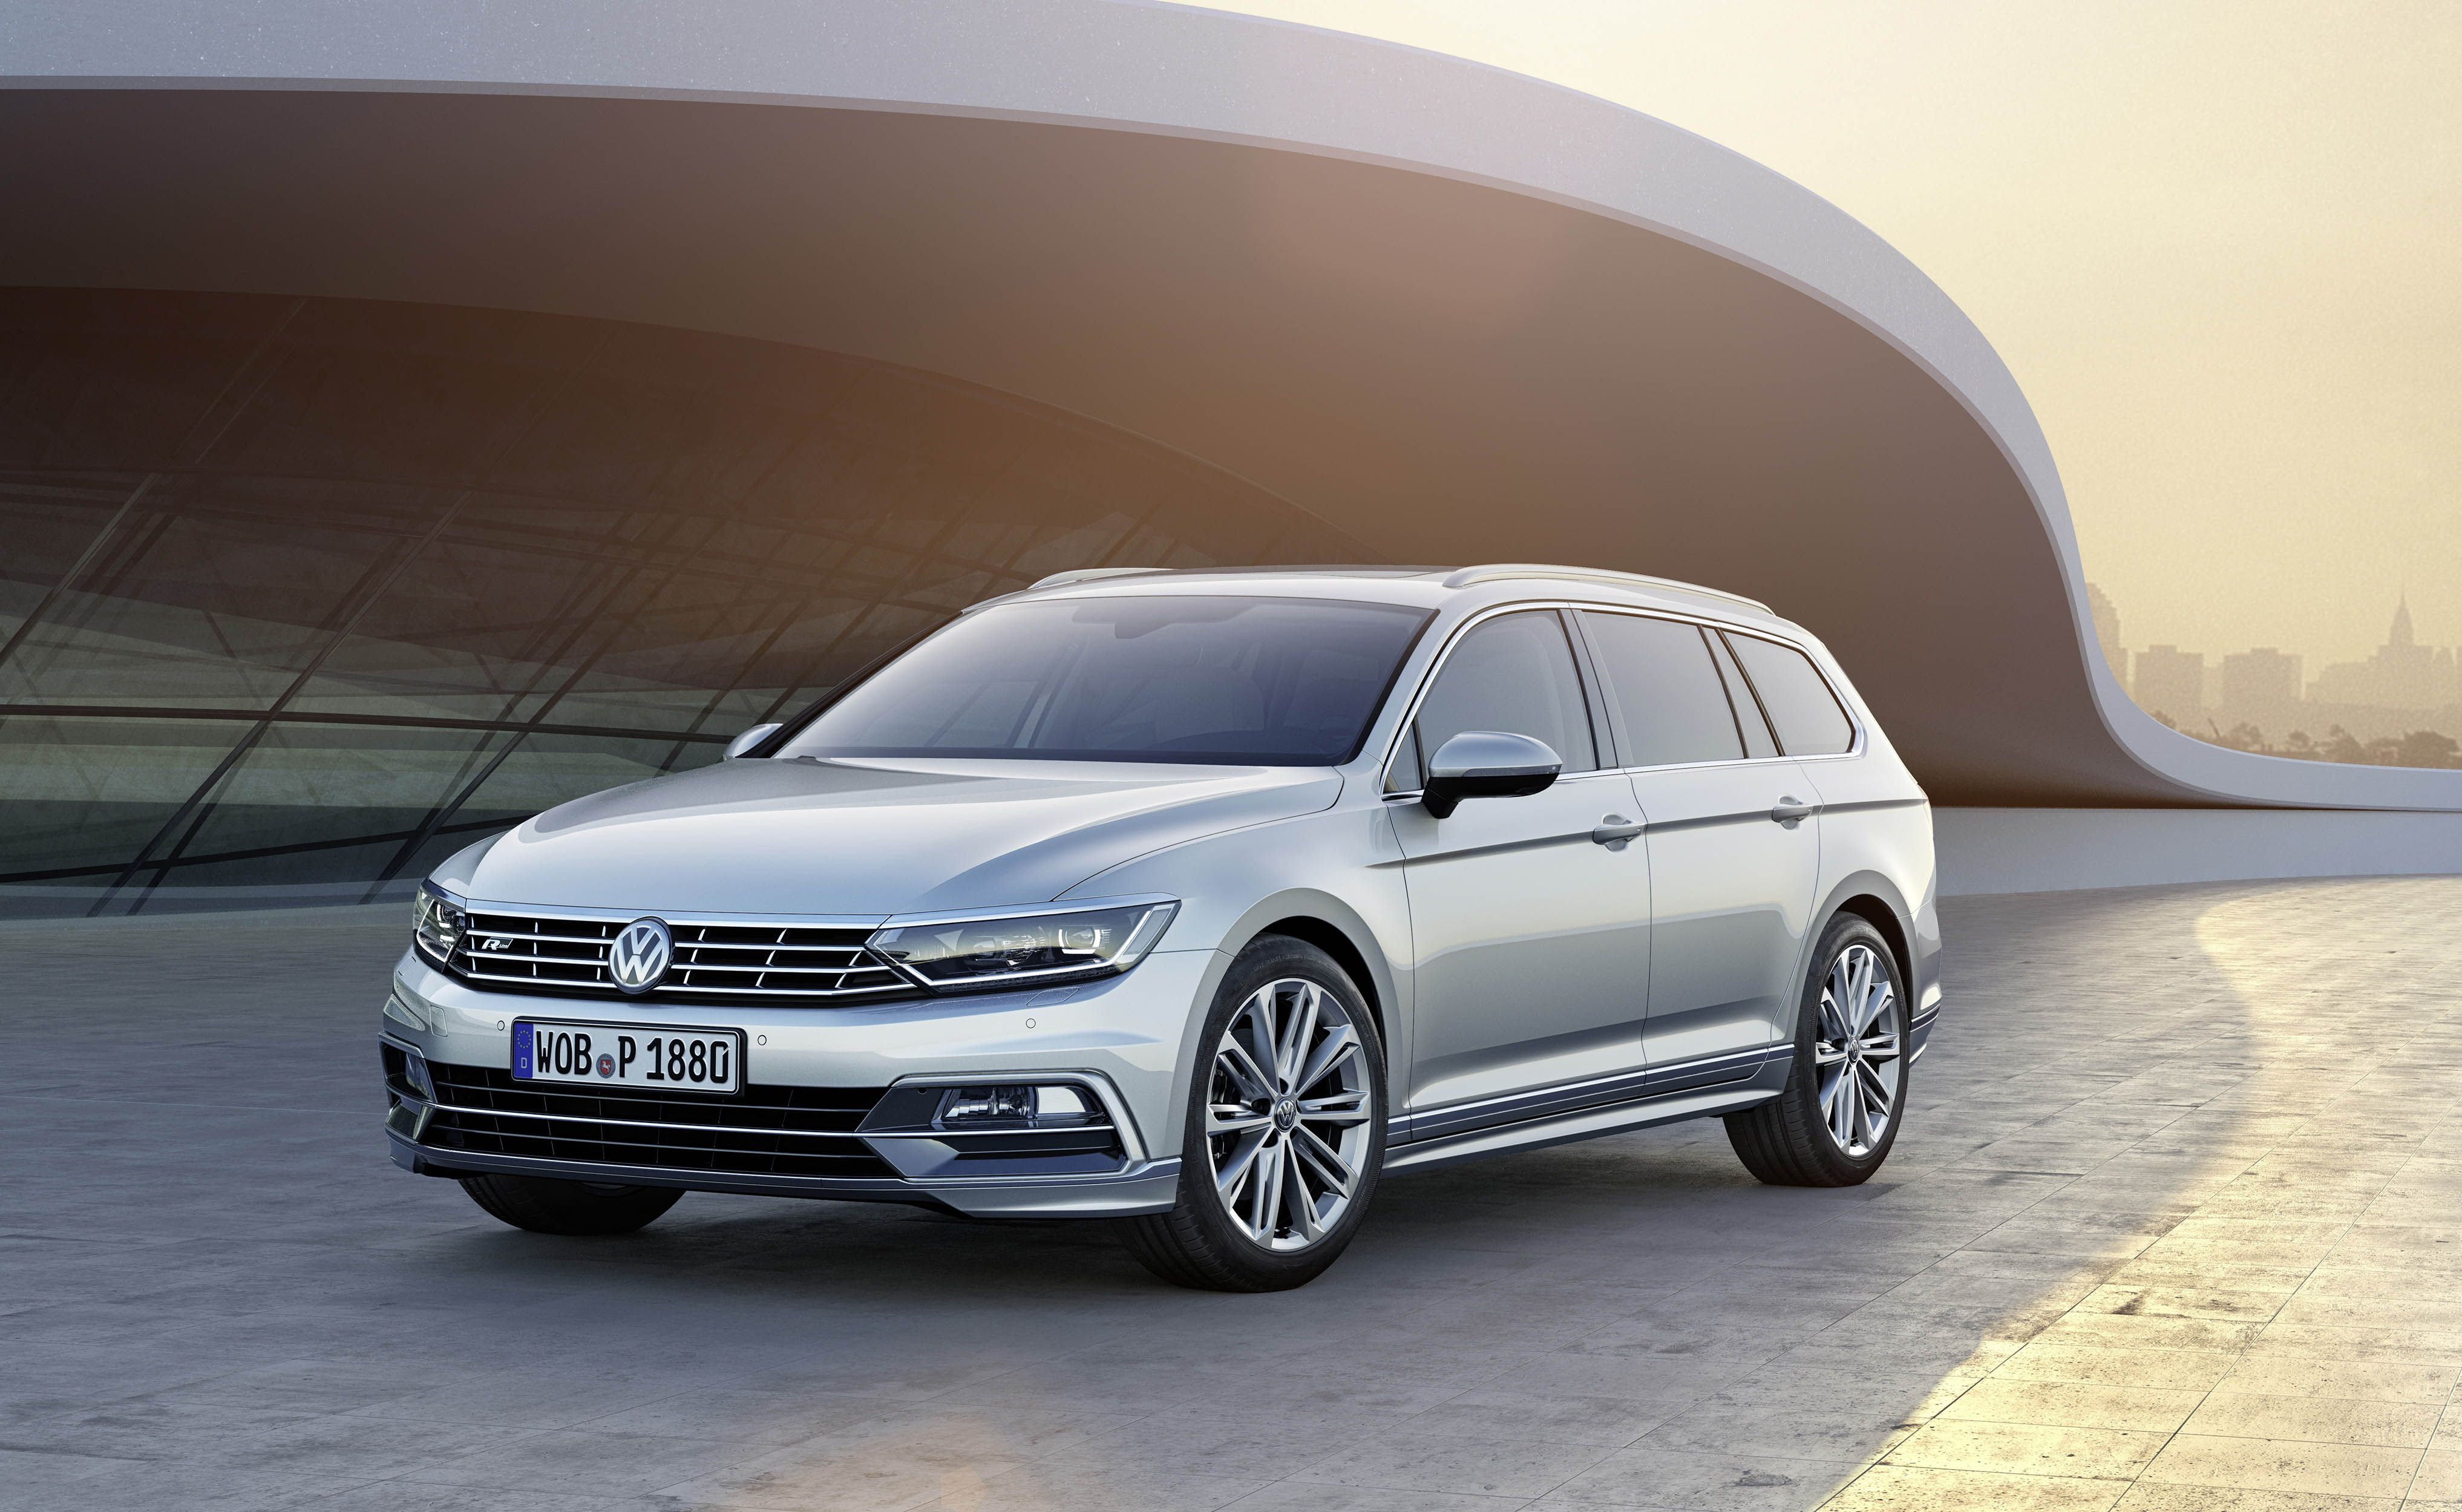 boston volkswagen eos best near nh for manchester new sale offers passat in finance prices ma and lease vehicles vw